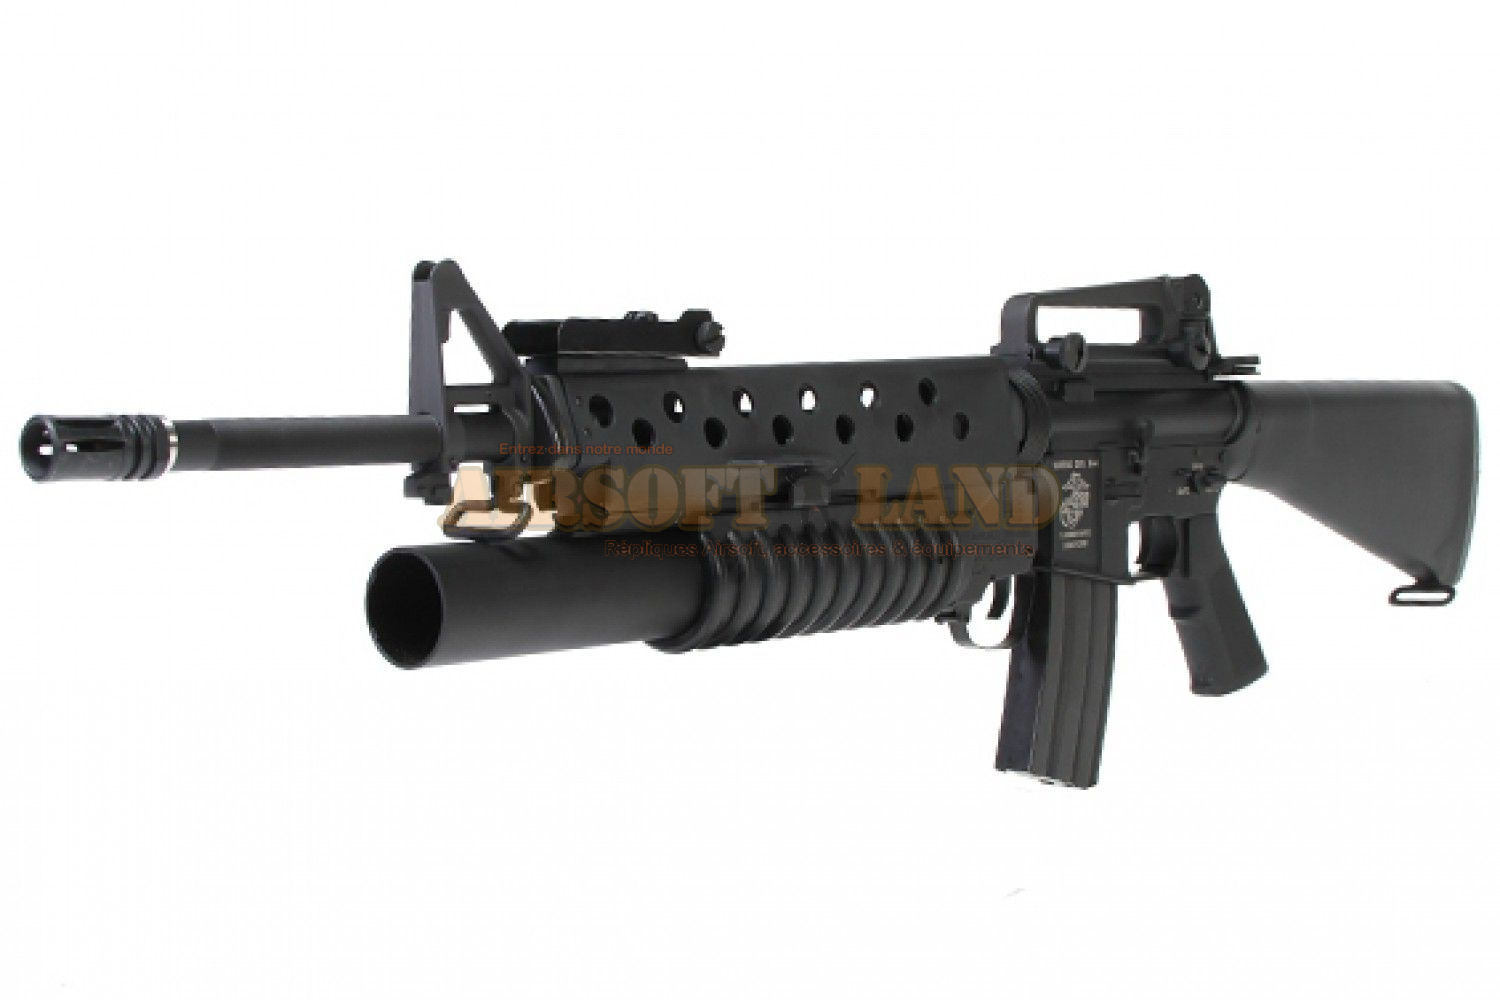 M16A3 lance grenade M203 combo pack